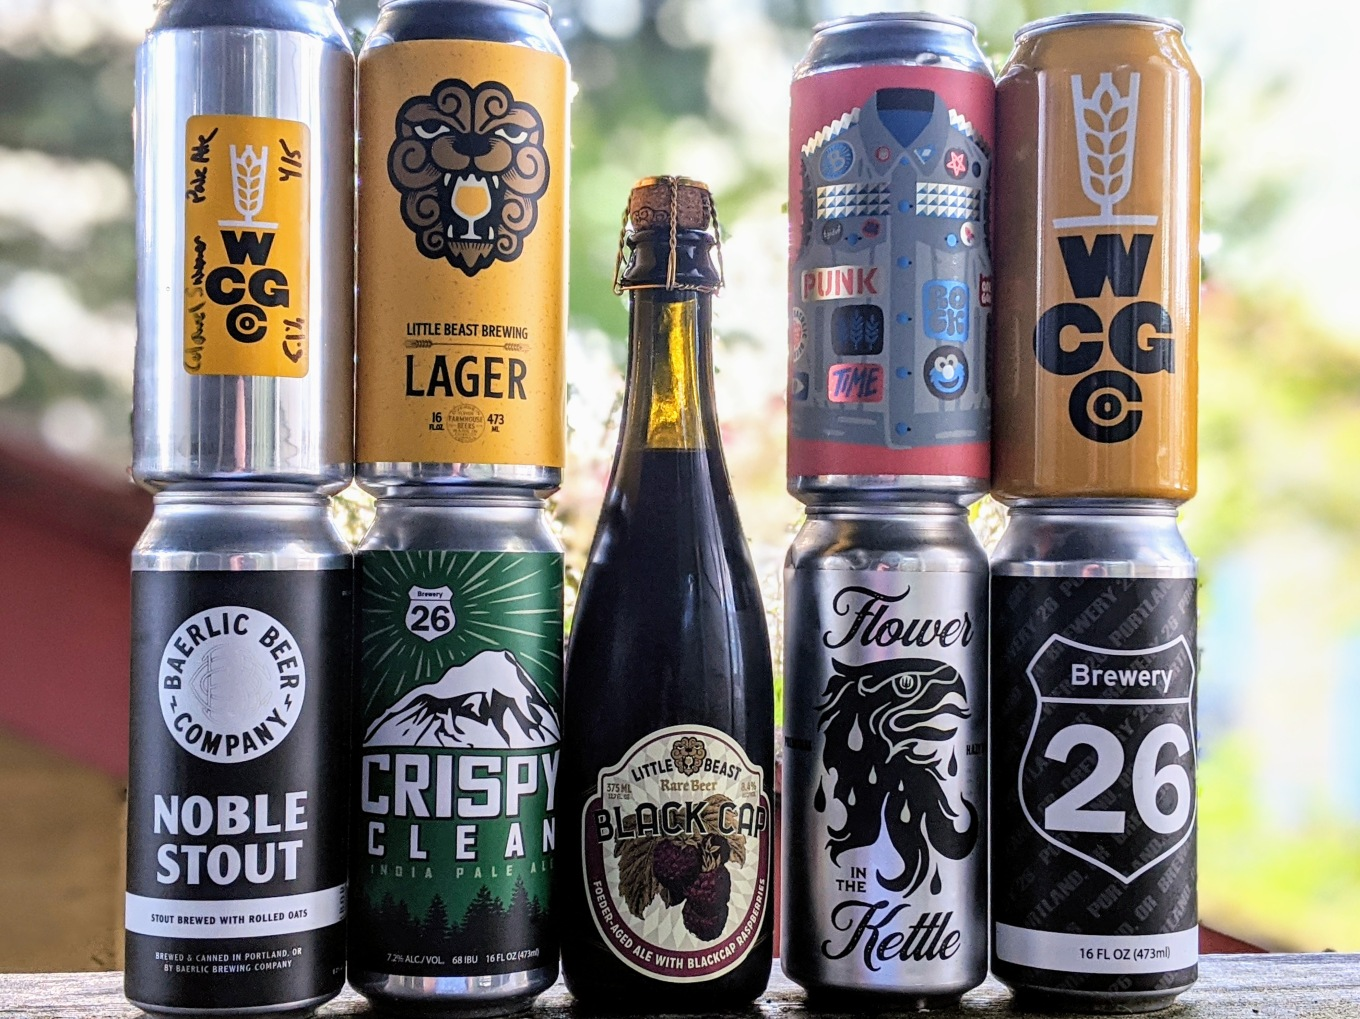 New Delivery Pickup Beers - Baerlic Brewery26 Little Beast Wayfinder West Coast Grocery